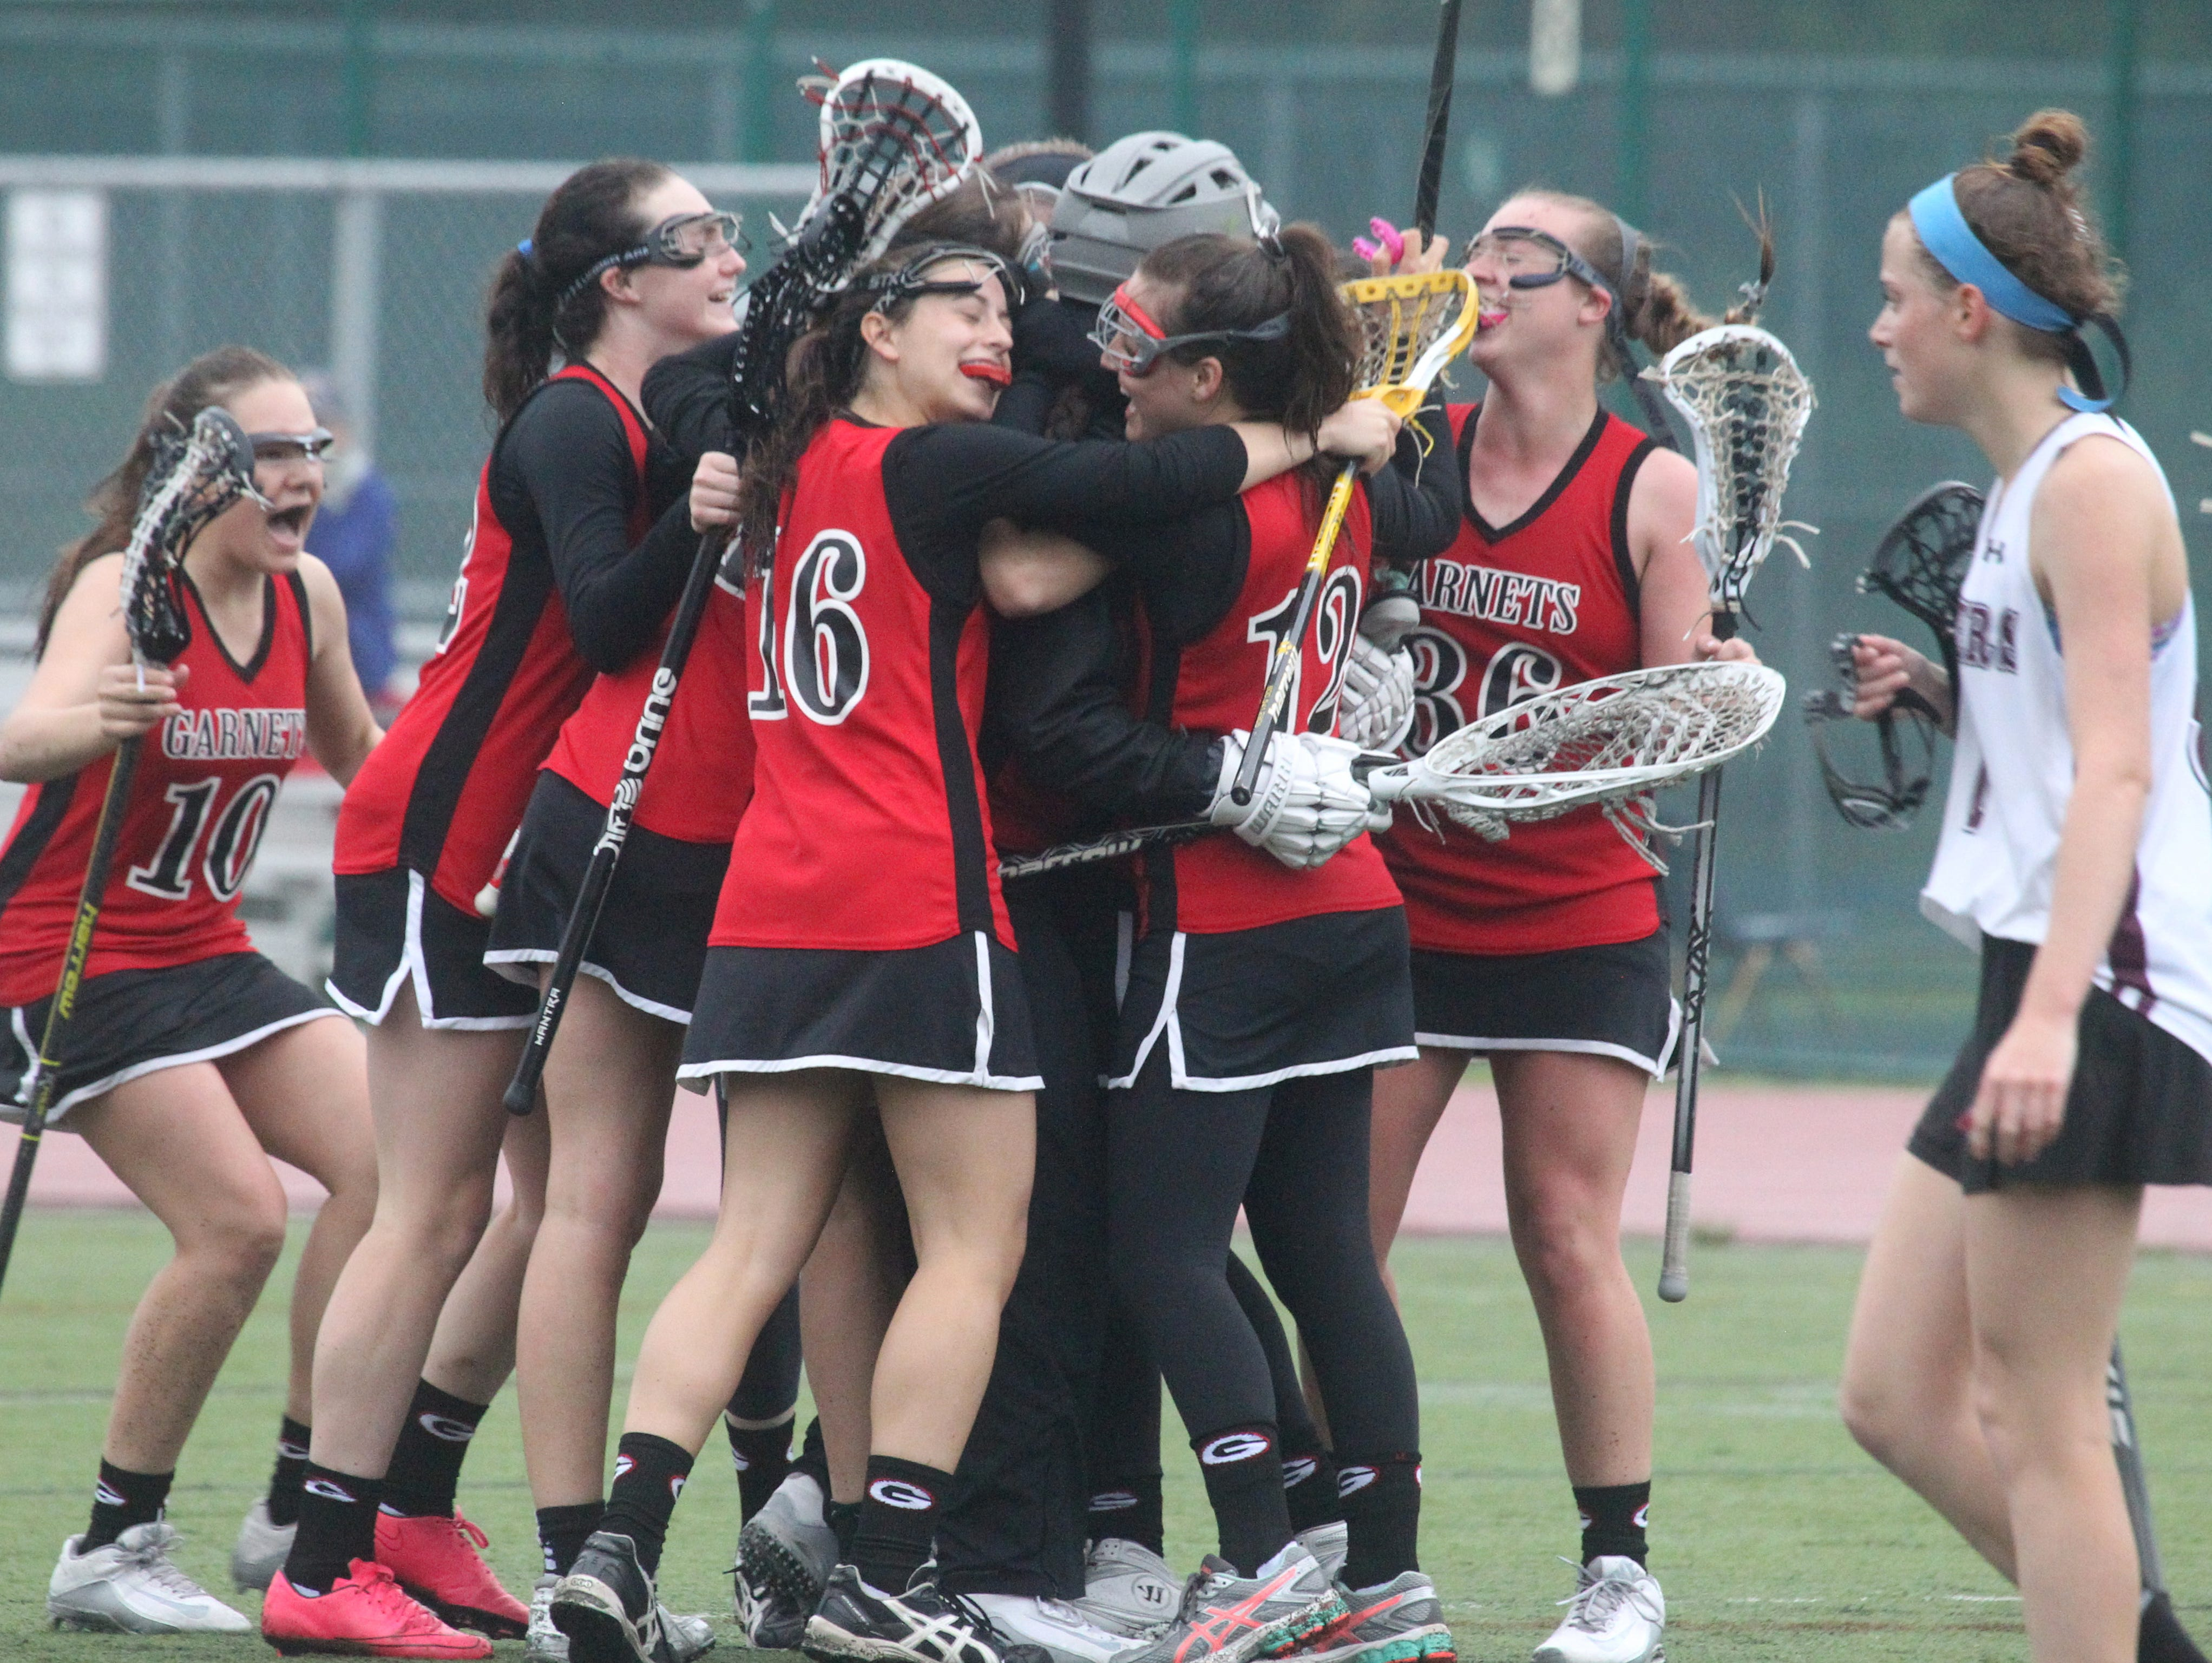 Rye players celebrate their 10-9 win at Scarsdale May 13, 2016.